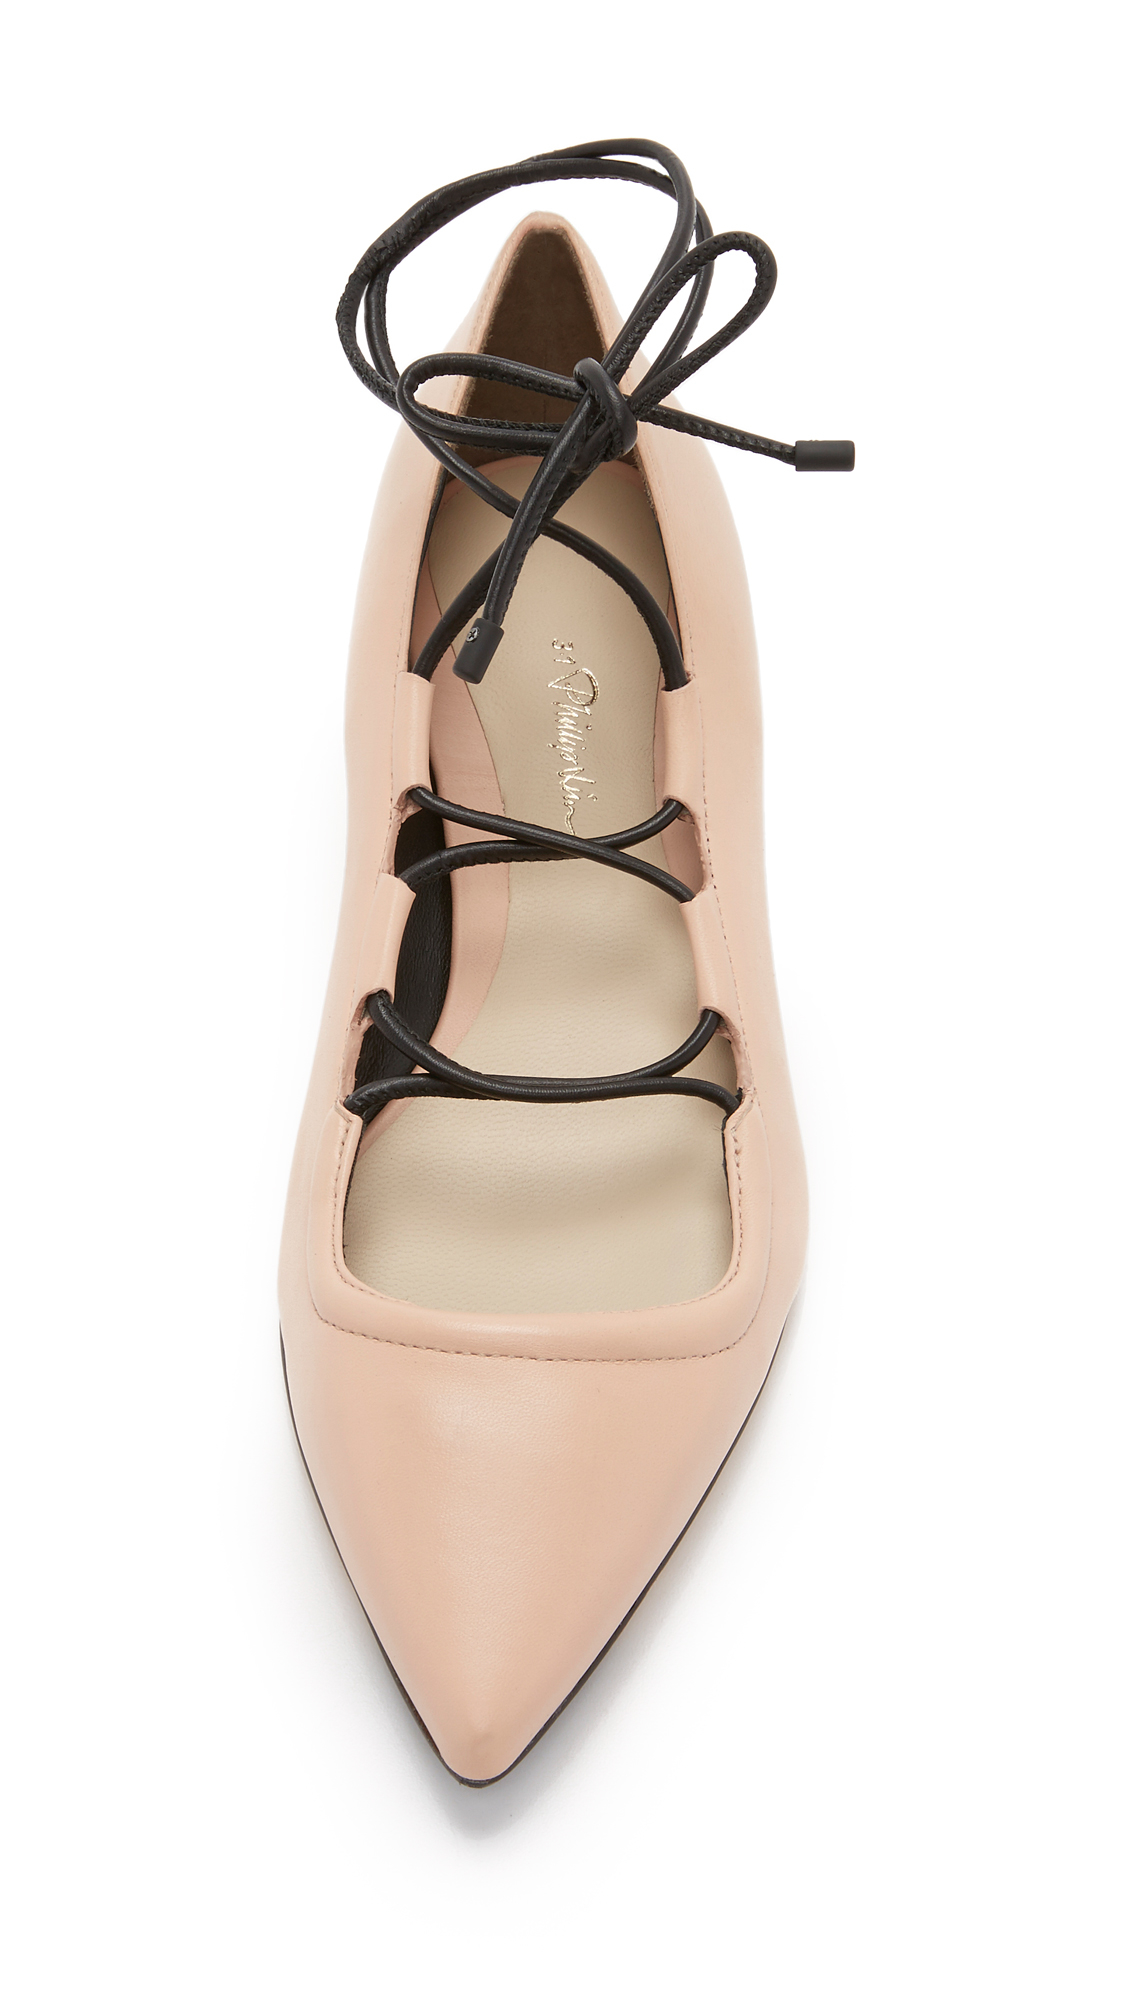 clearance 2014 unisex discount high quality 3.1 Phillip Lim Pointed-Toe Lace-Up Flats online sale free shipping cheap quality A3wZJ2xA